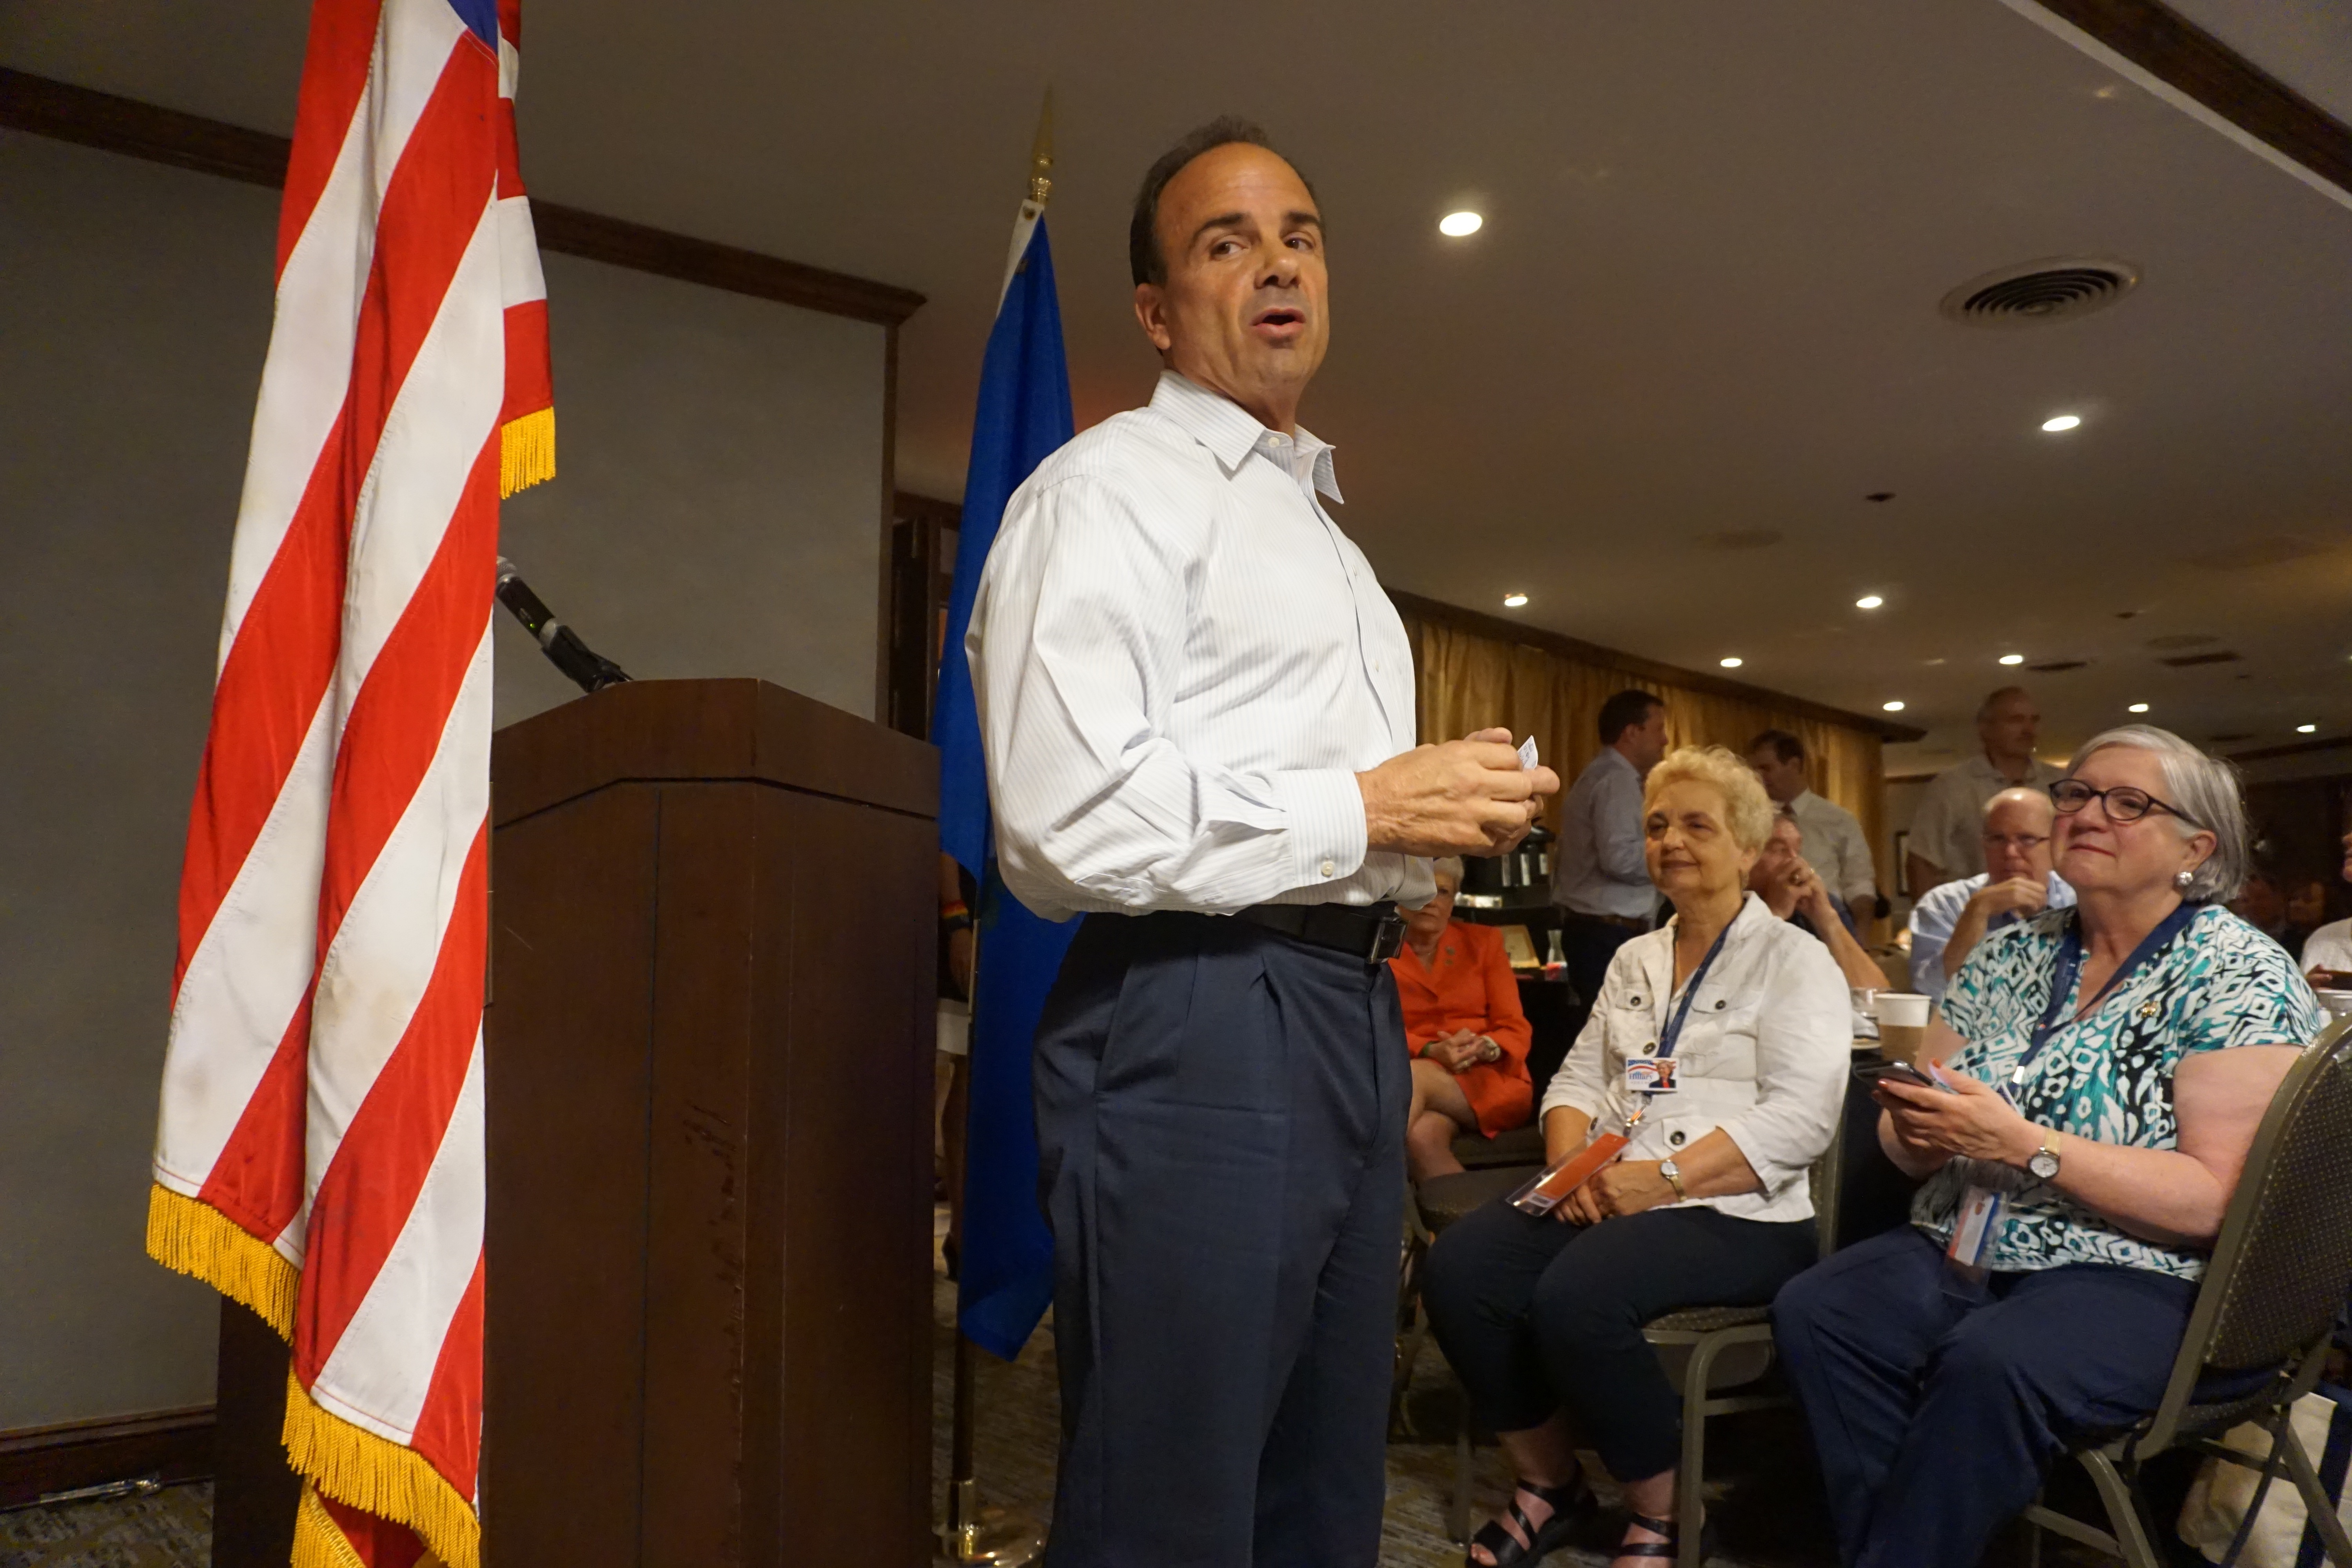 In prison during Obama's election, Ganim a delegate for Hillary